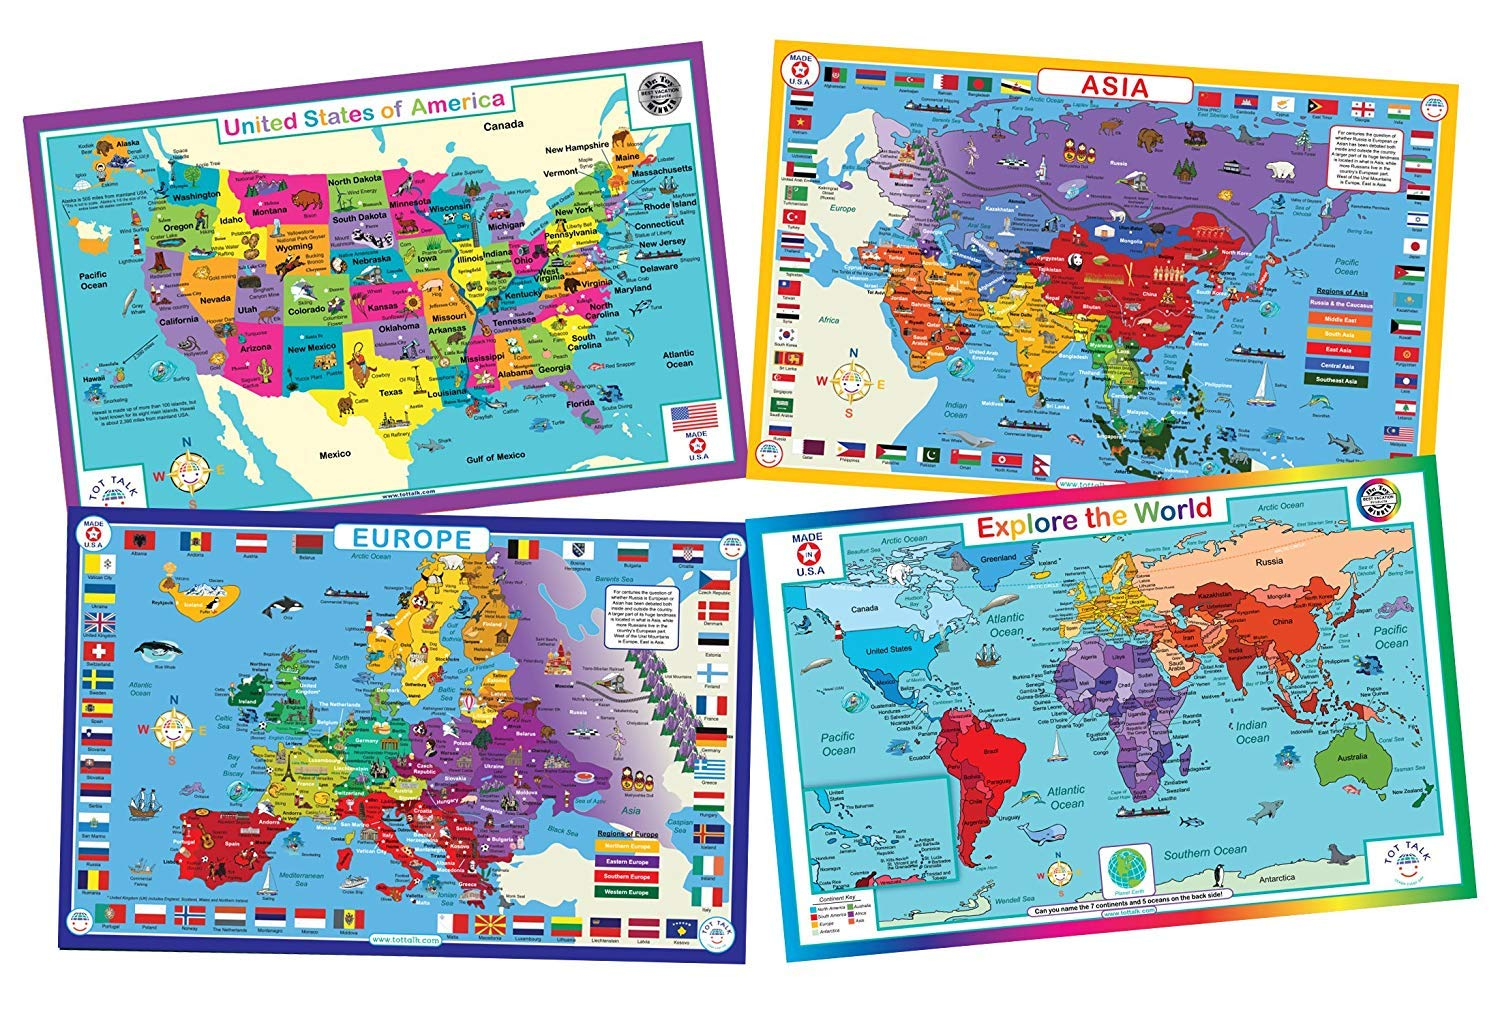 Tot Talk Educational Kids Placemats - Geography Set of 4 Maps: USA, World, Asia, Europe - Reversible Activities - Waterproof, Washable, Wipeable, Durable, USA-Made, Table Mats by Tot Talk